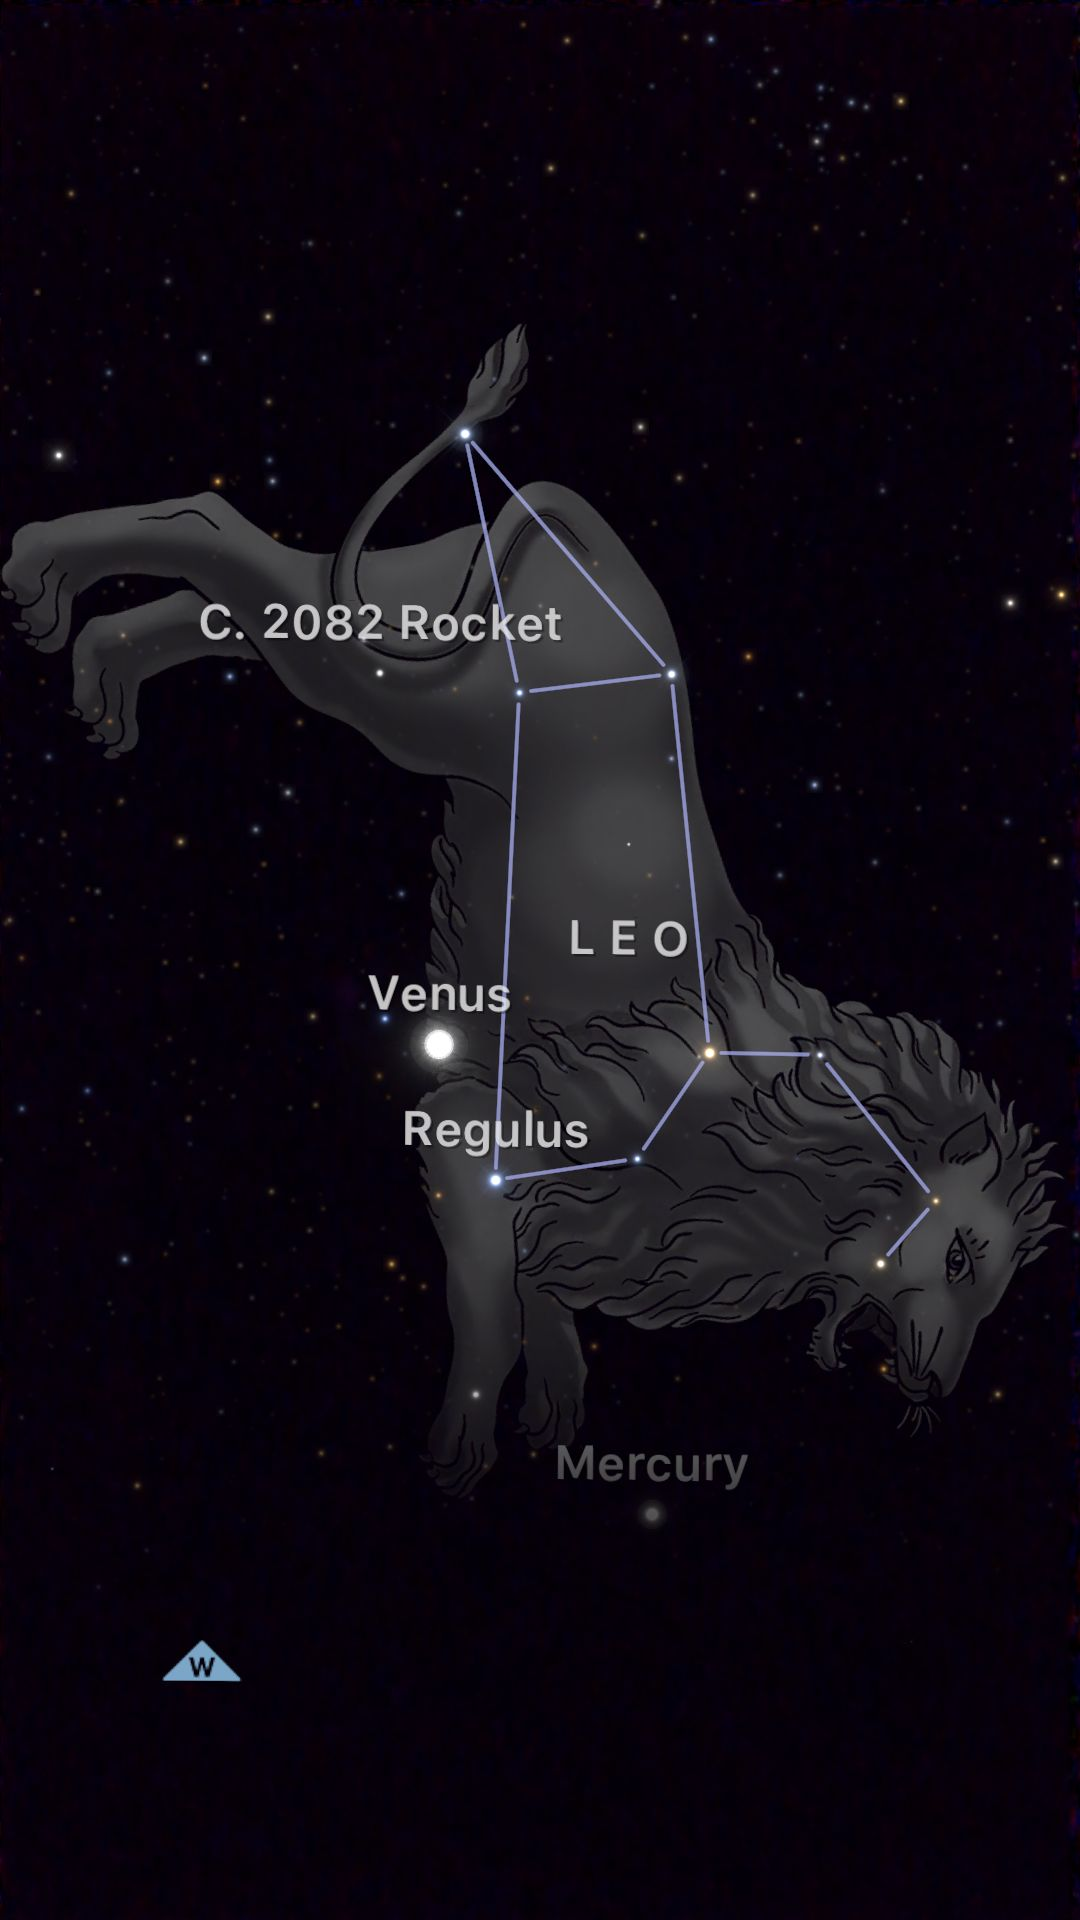 Check out my sky in the stargazing app SkyGuide by